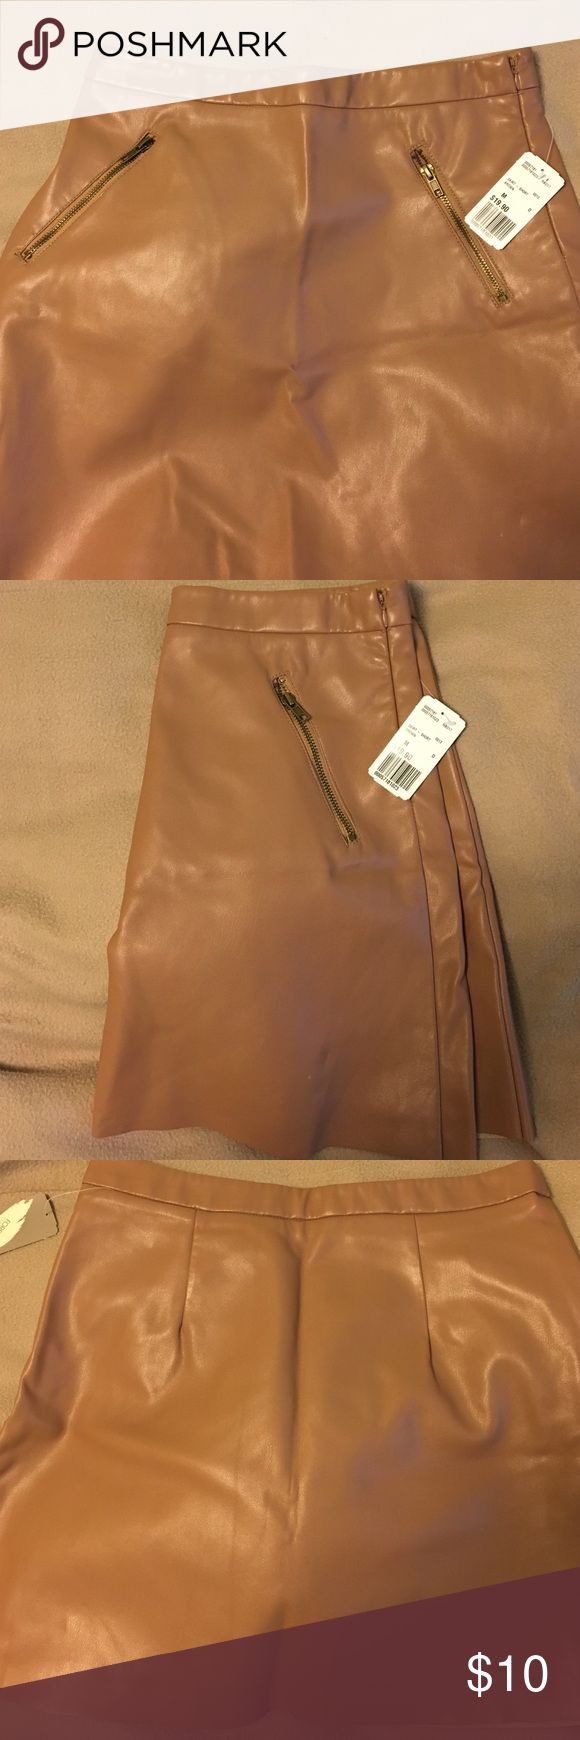 Forever 21 Faux Leather Pencil skirt Neutral brown, faux leather pencil skirt from Forever 21. Brand new with tags, never worn. Forever 21 Skirts A-Line or Full